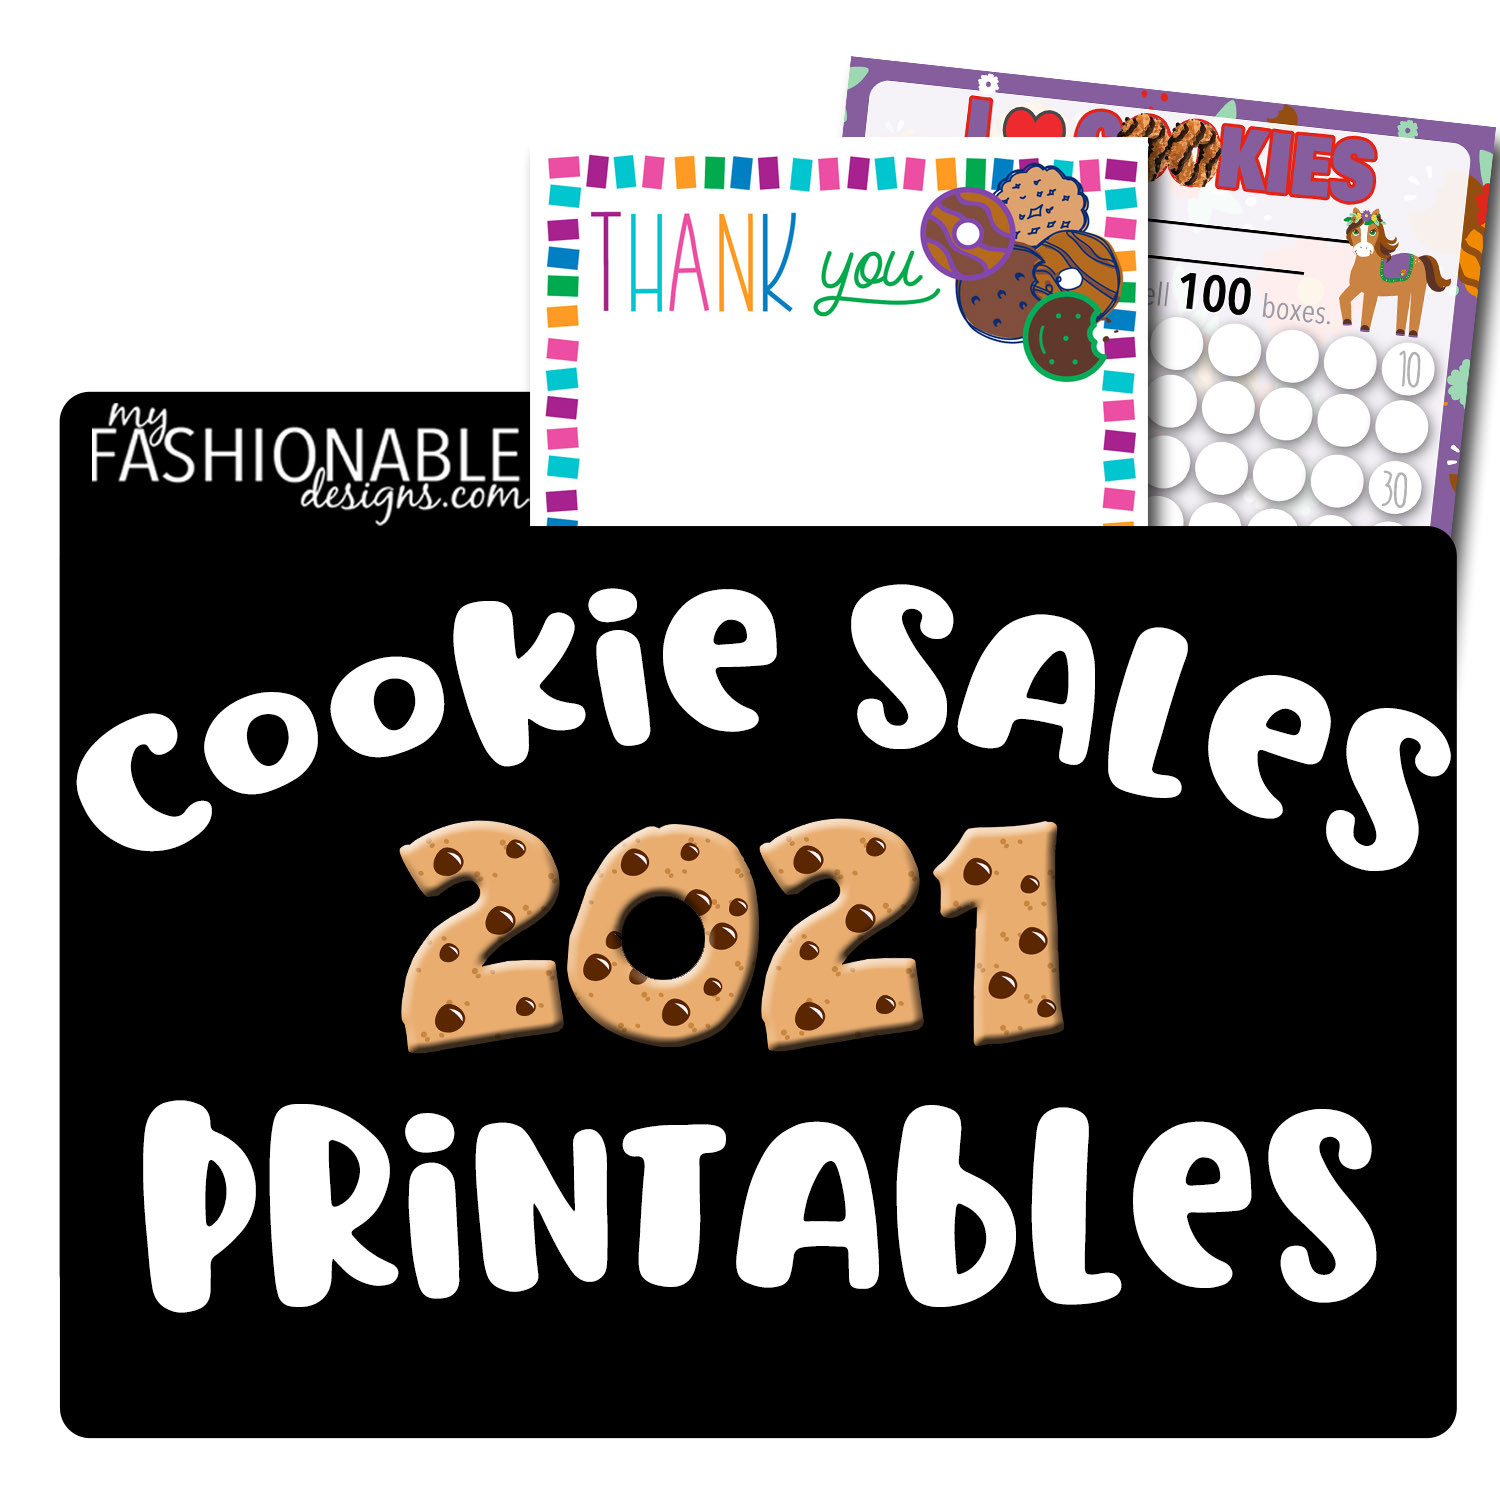 2021 Cookie Sales Printables